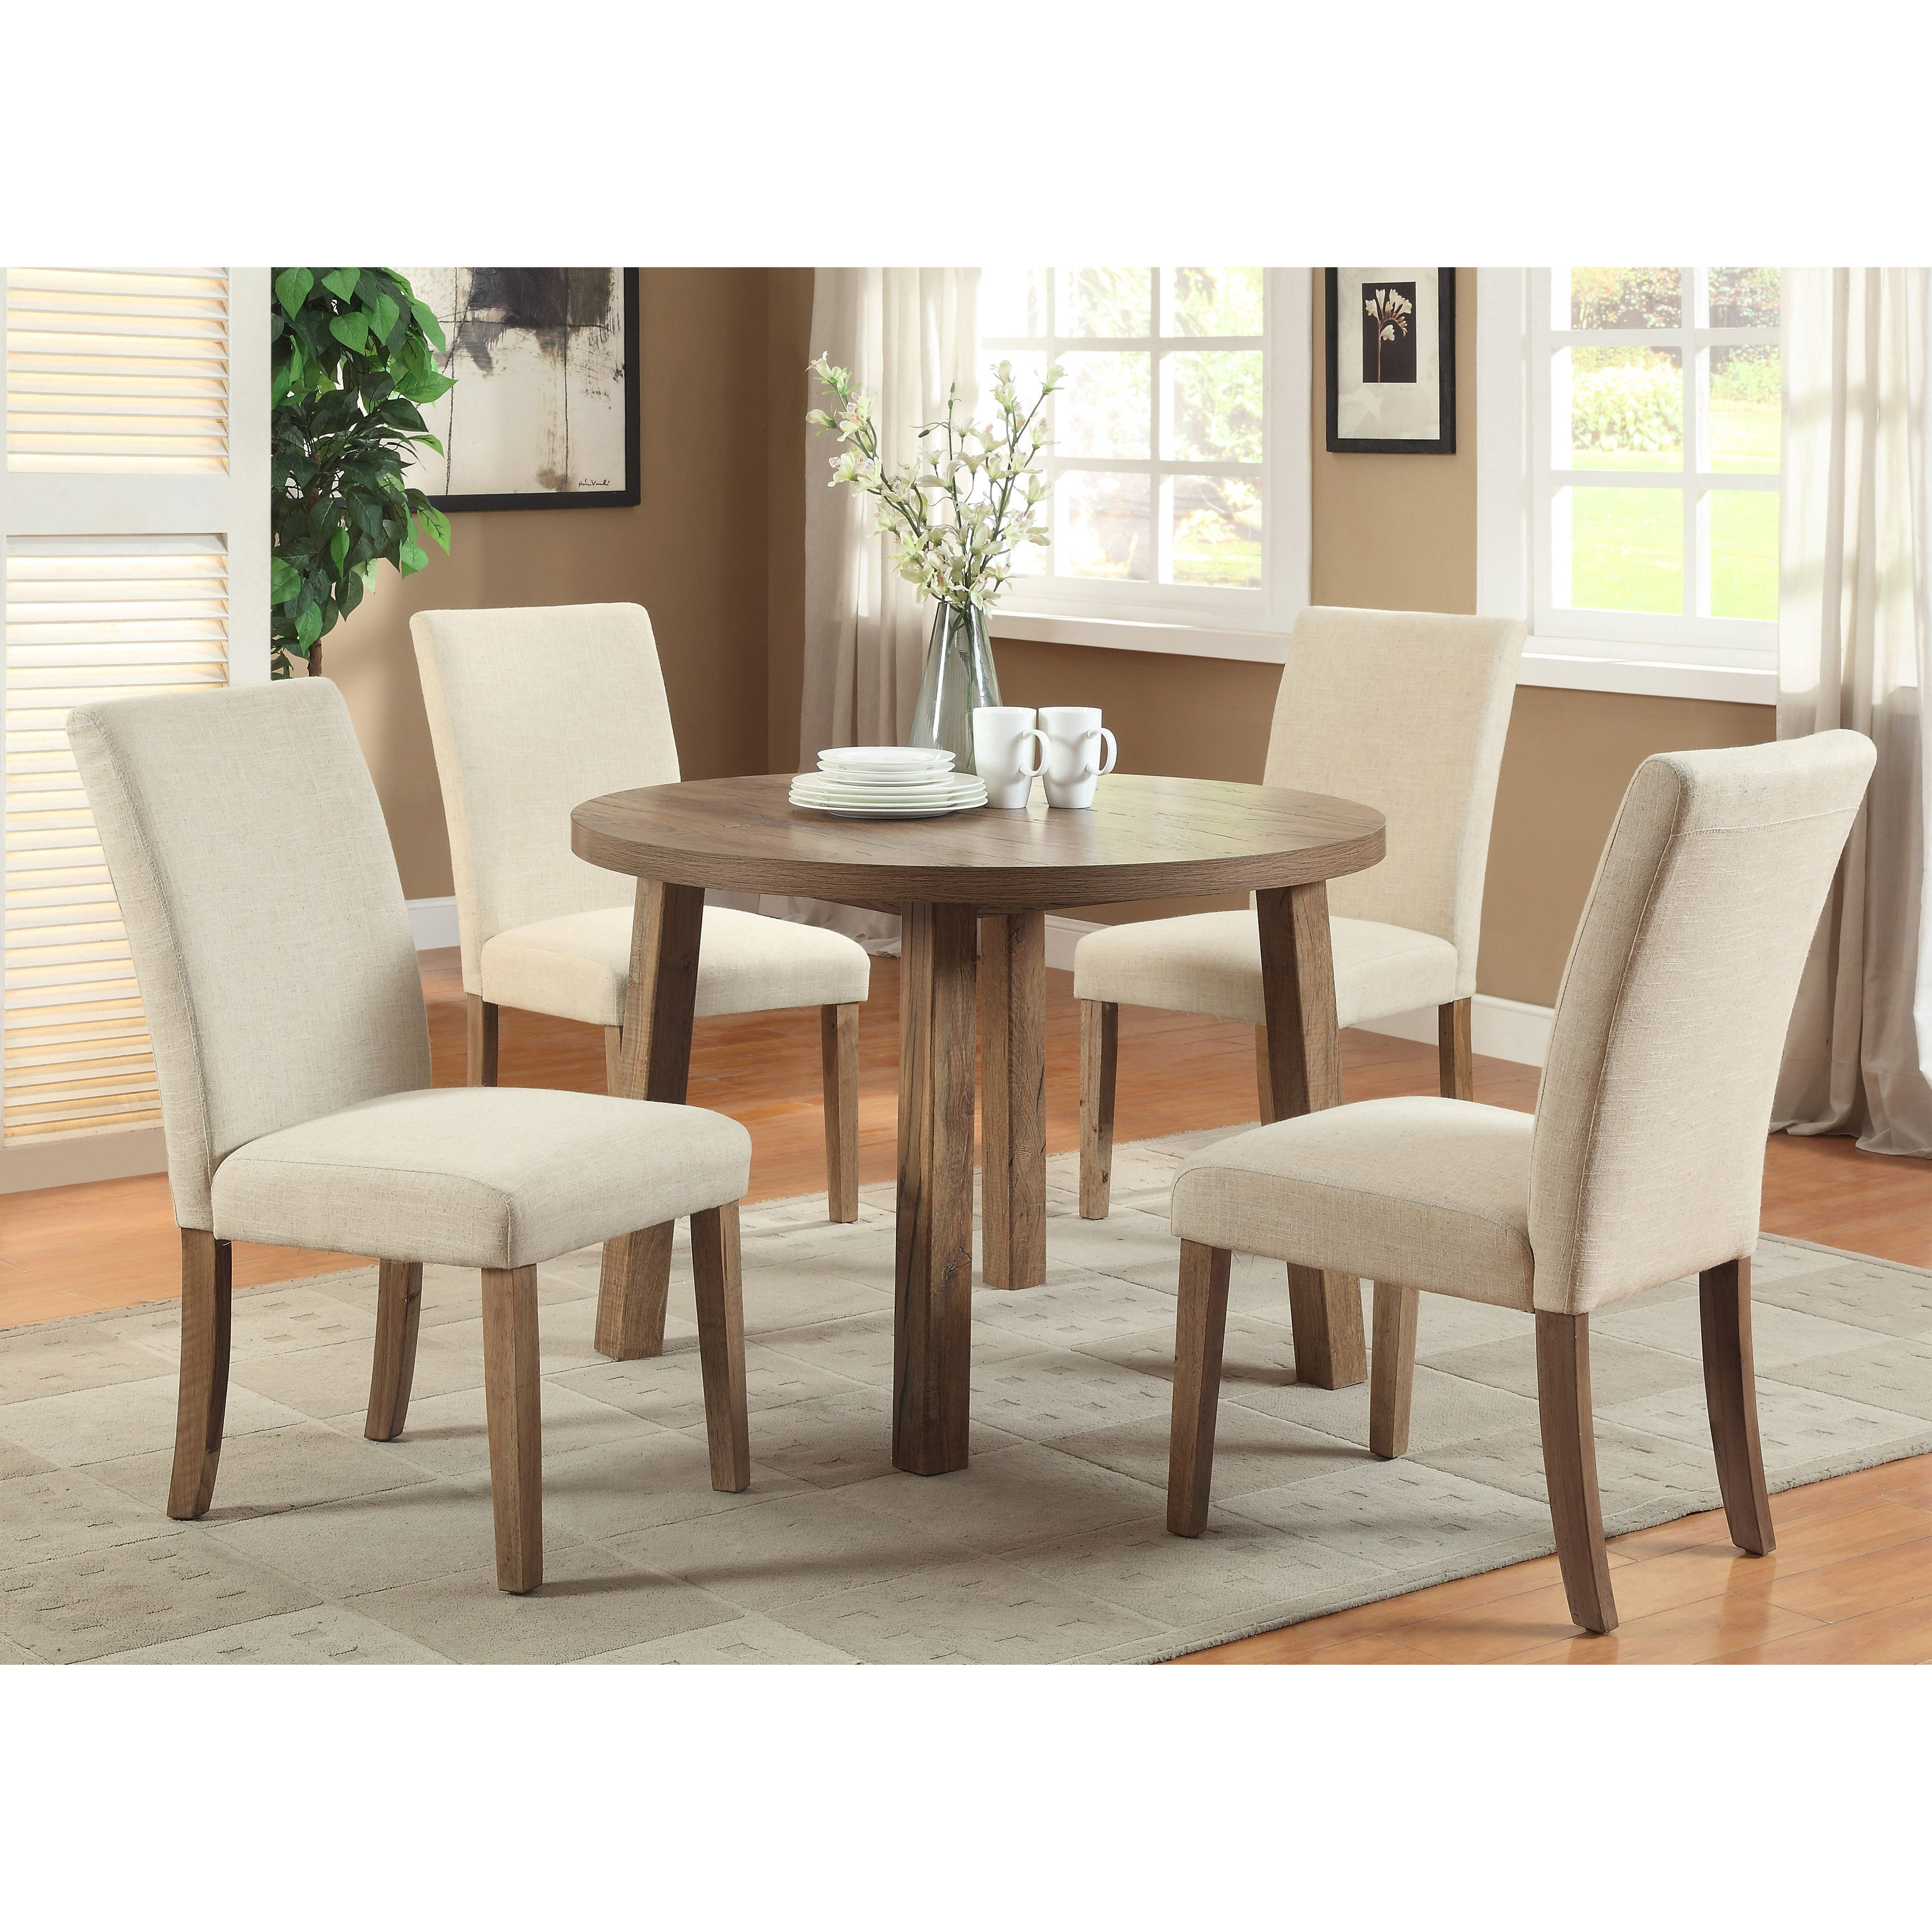 furniture of america seline round weathered elm dining table by